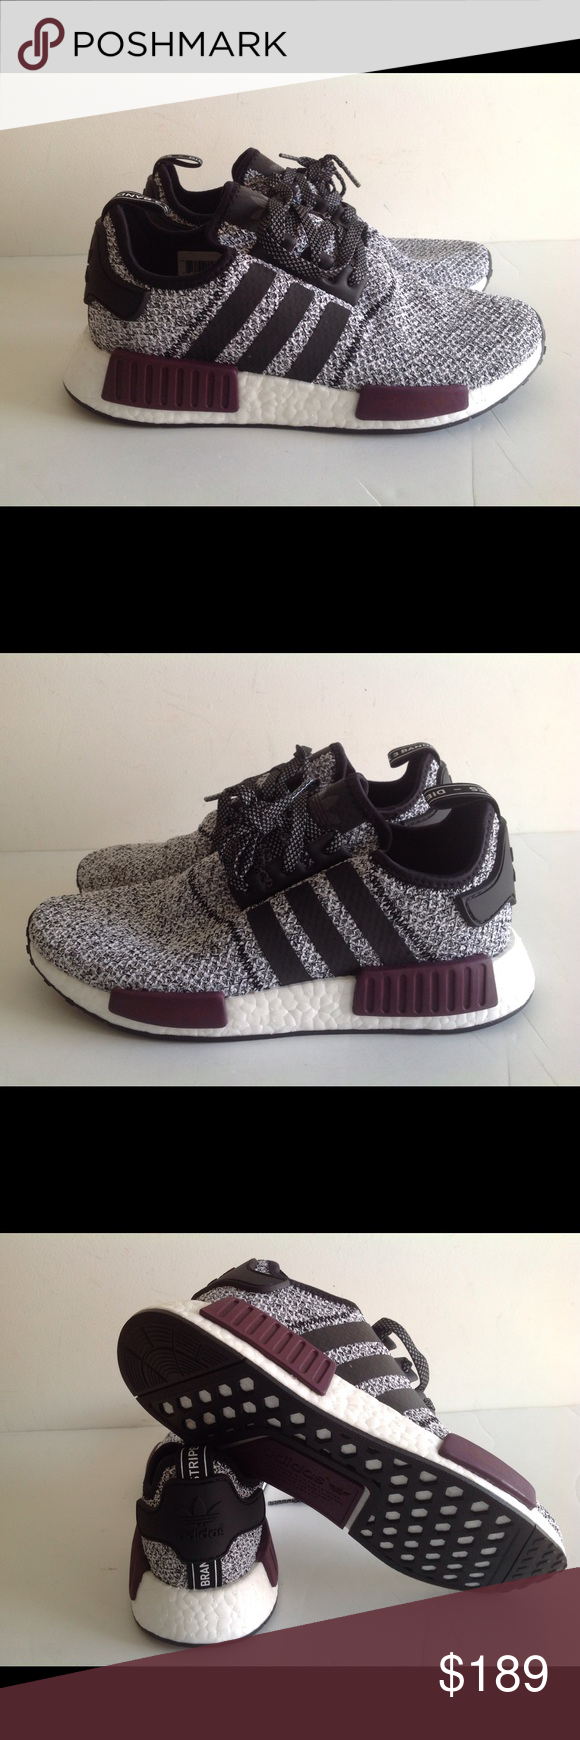 52fb0a5d632 Adidas NMD R1 champs Exclusive Brand new with box grade school sz4